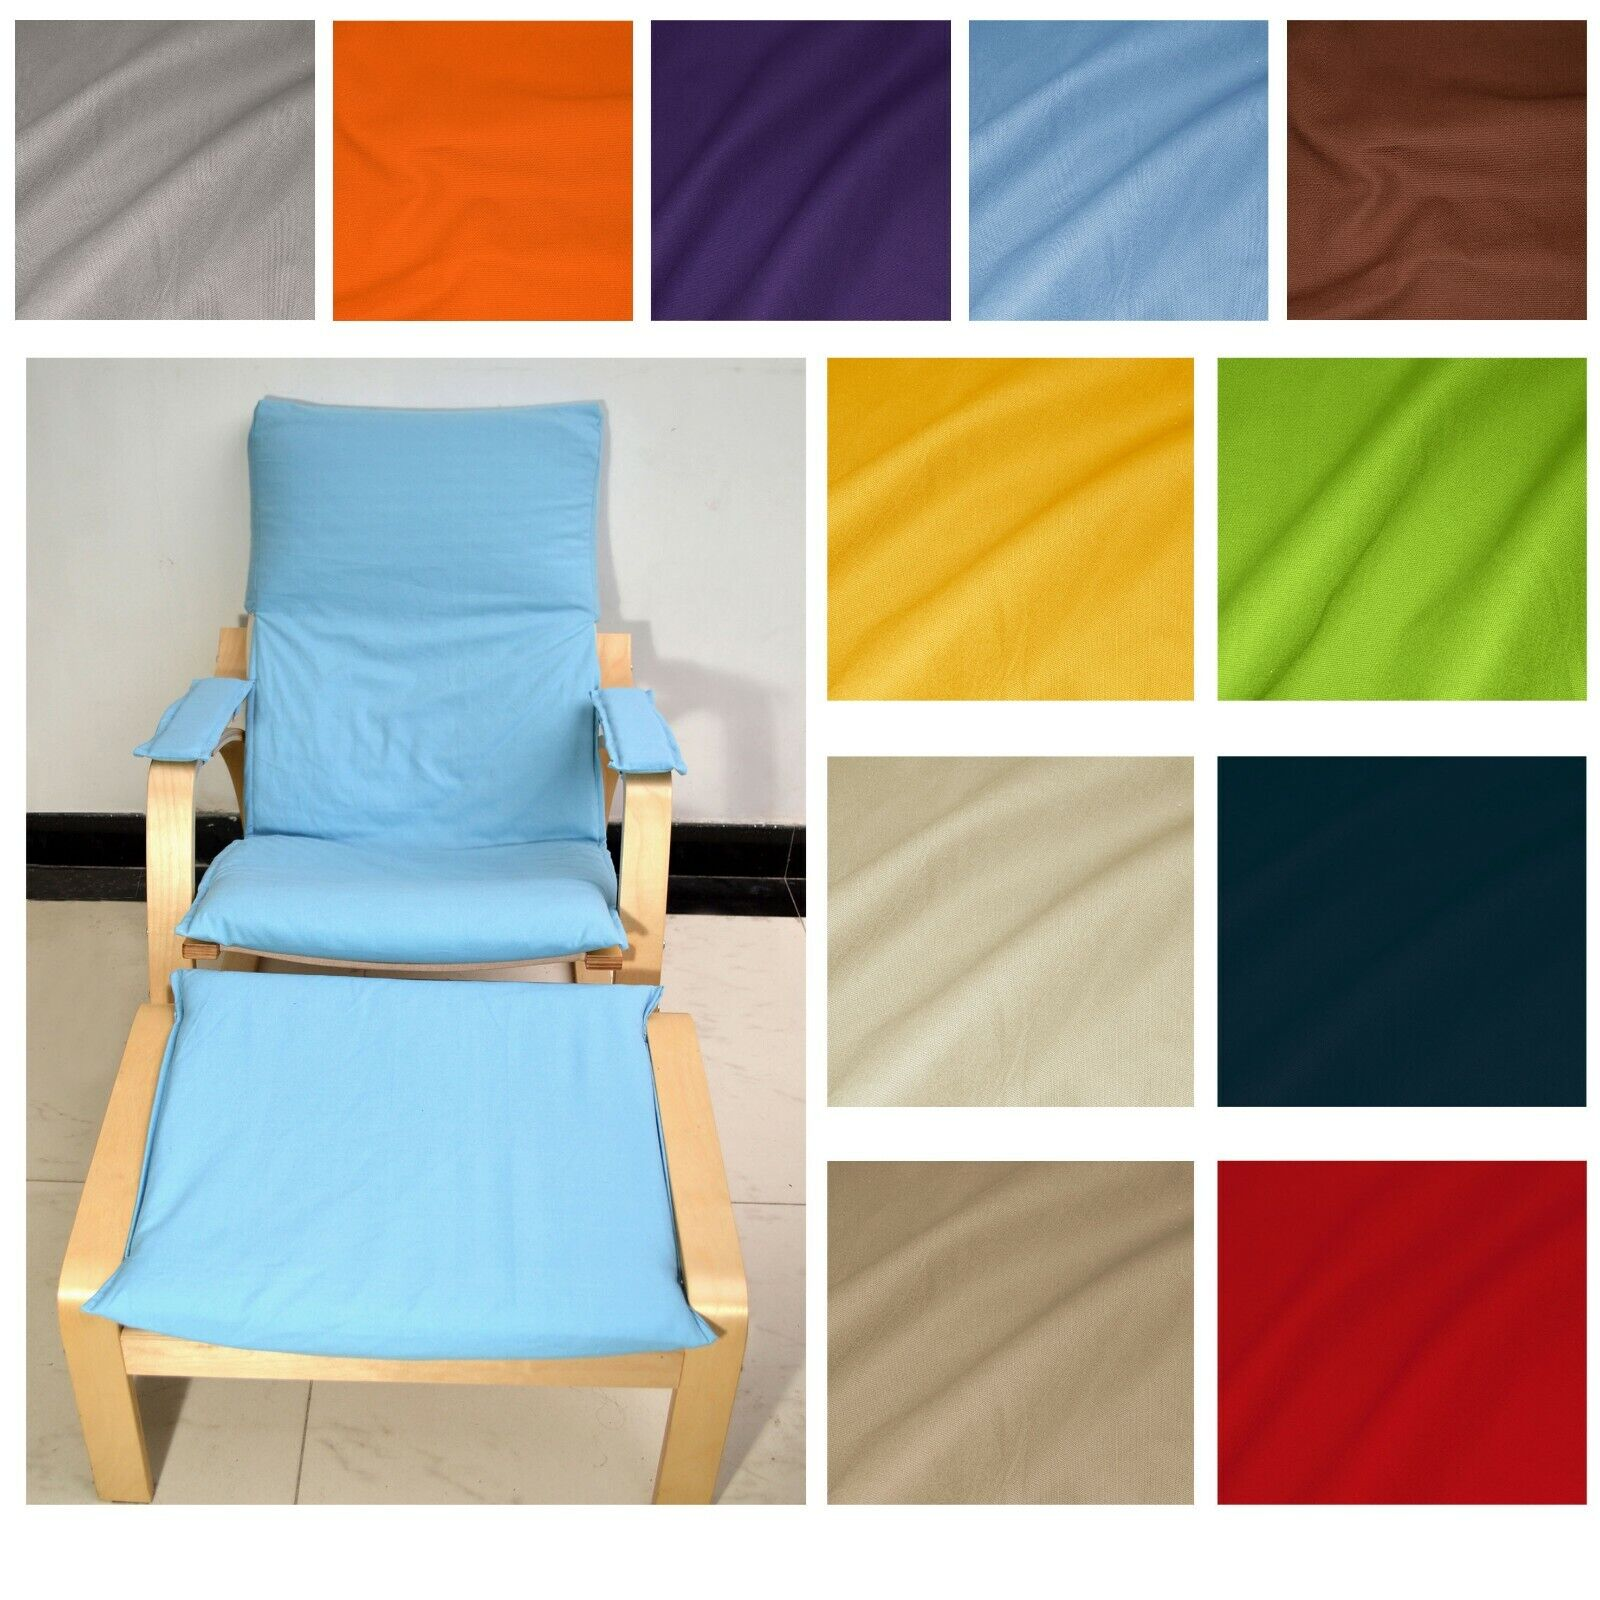 EXTRA PAD NO ZIPPER-Tailor Made For IKEA Poang Arm Chair*La